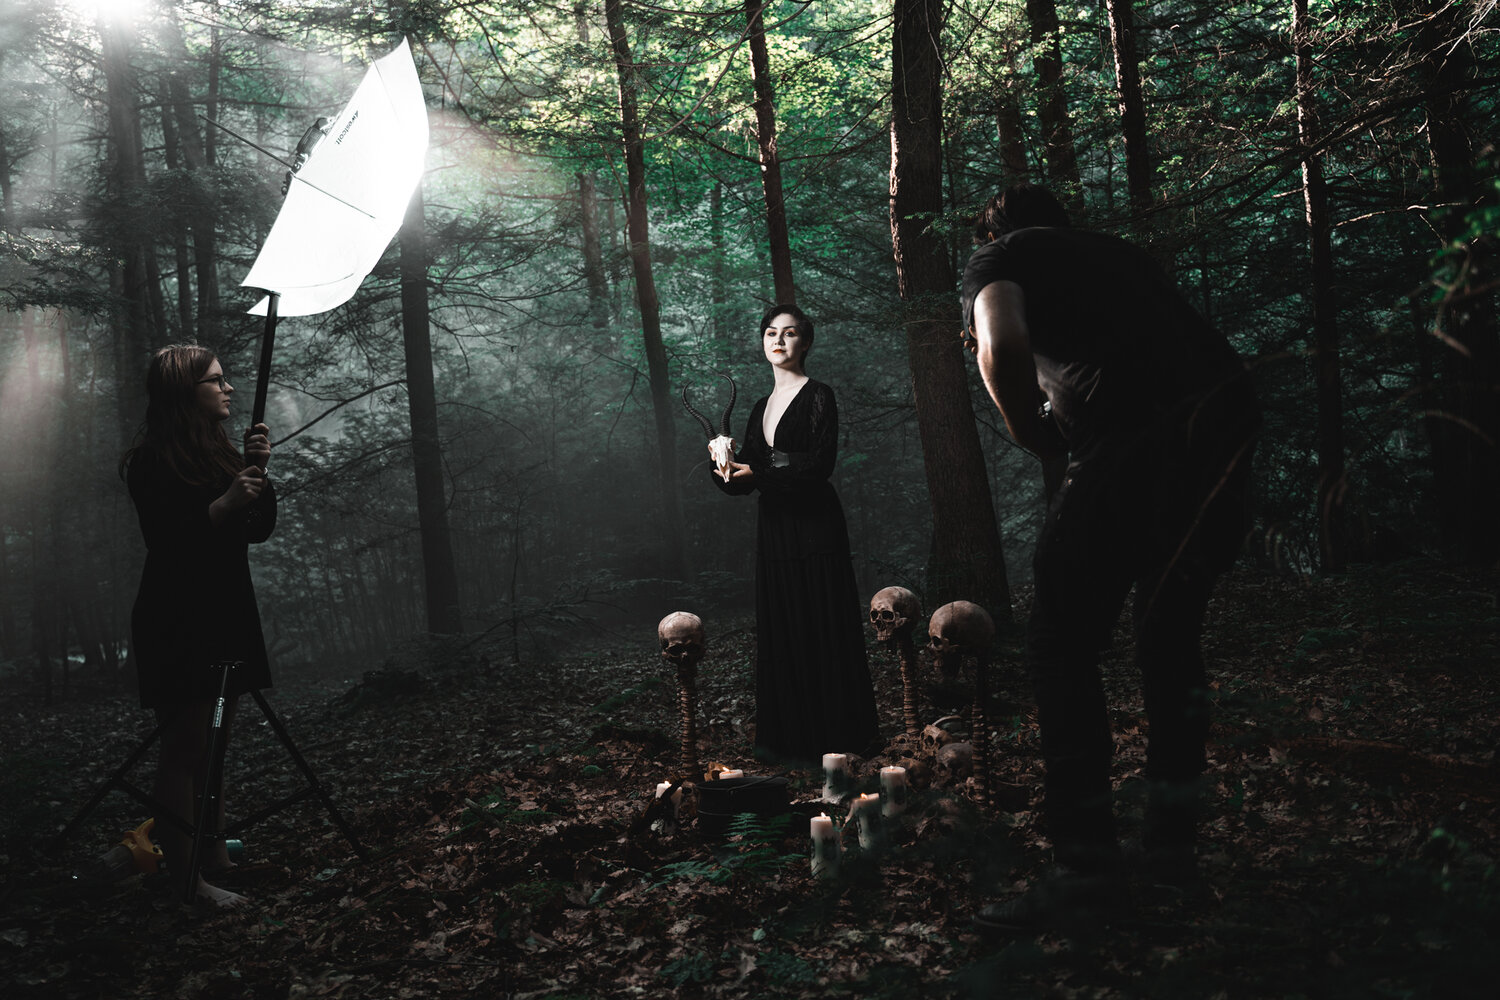 Behind the Scenes with the lighting used to create the image of Hayley on the portfolio page.